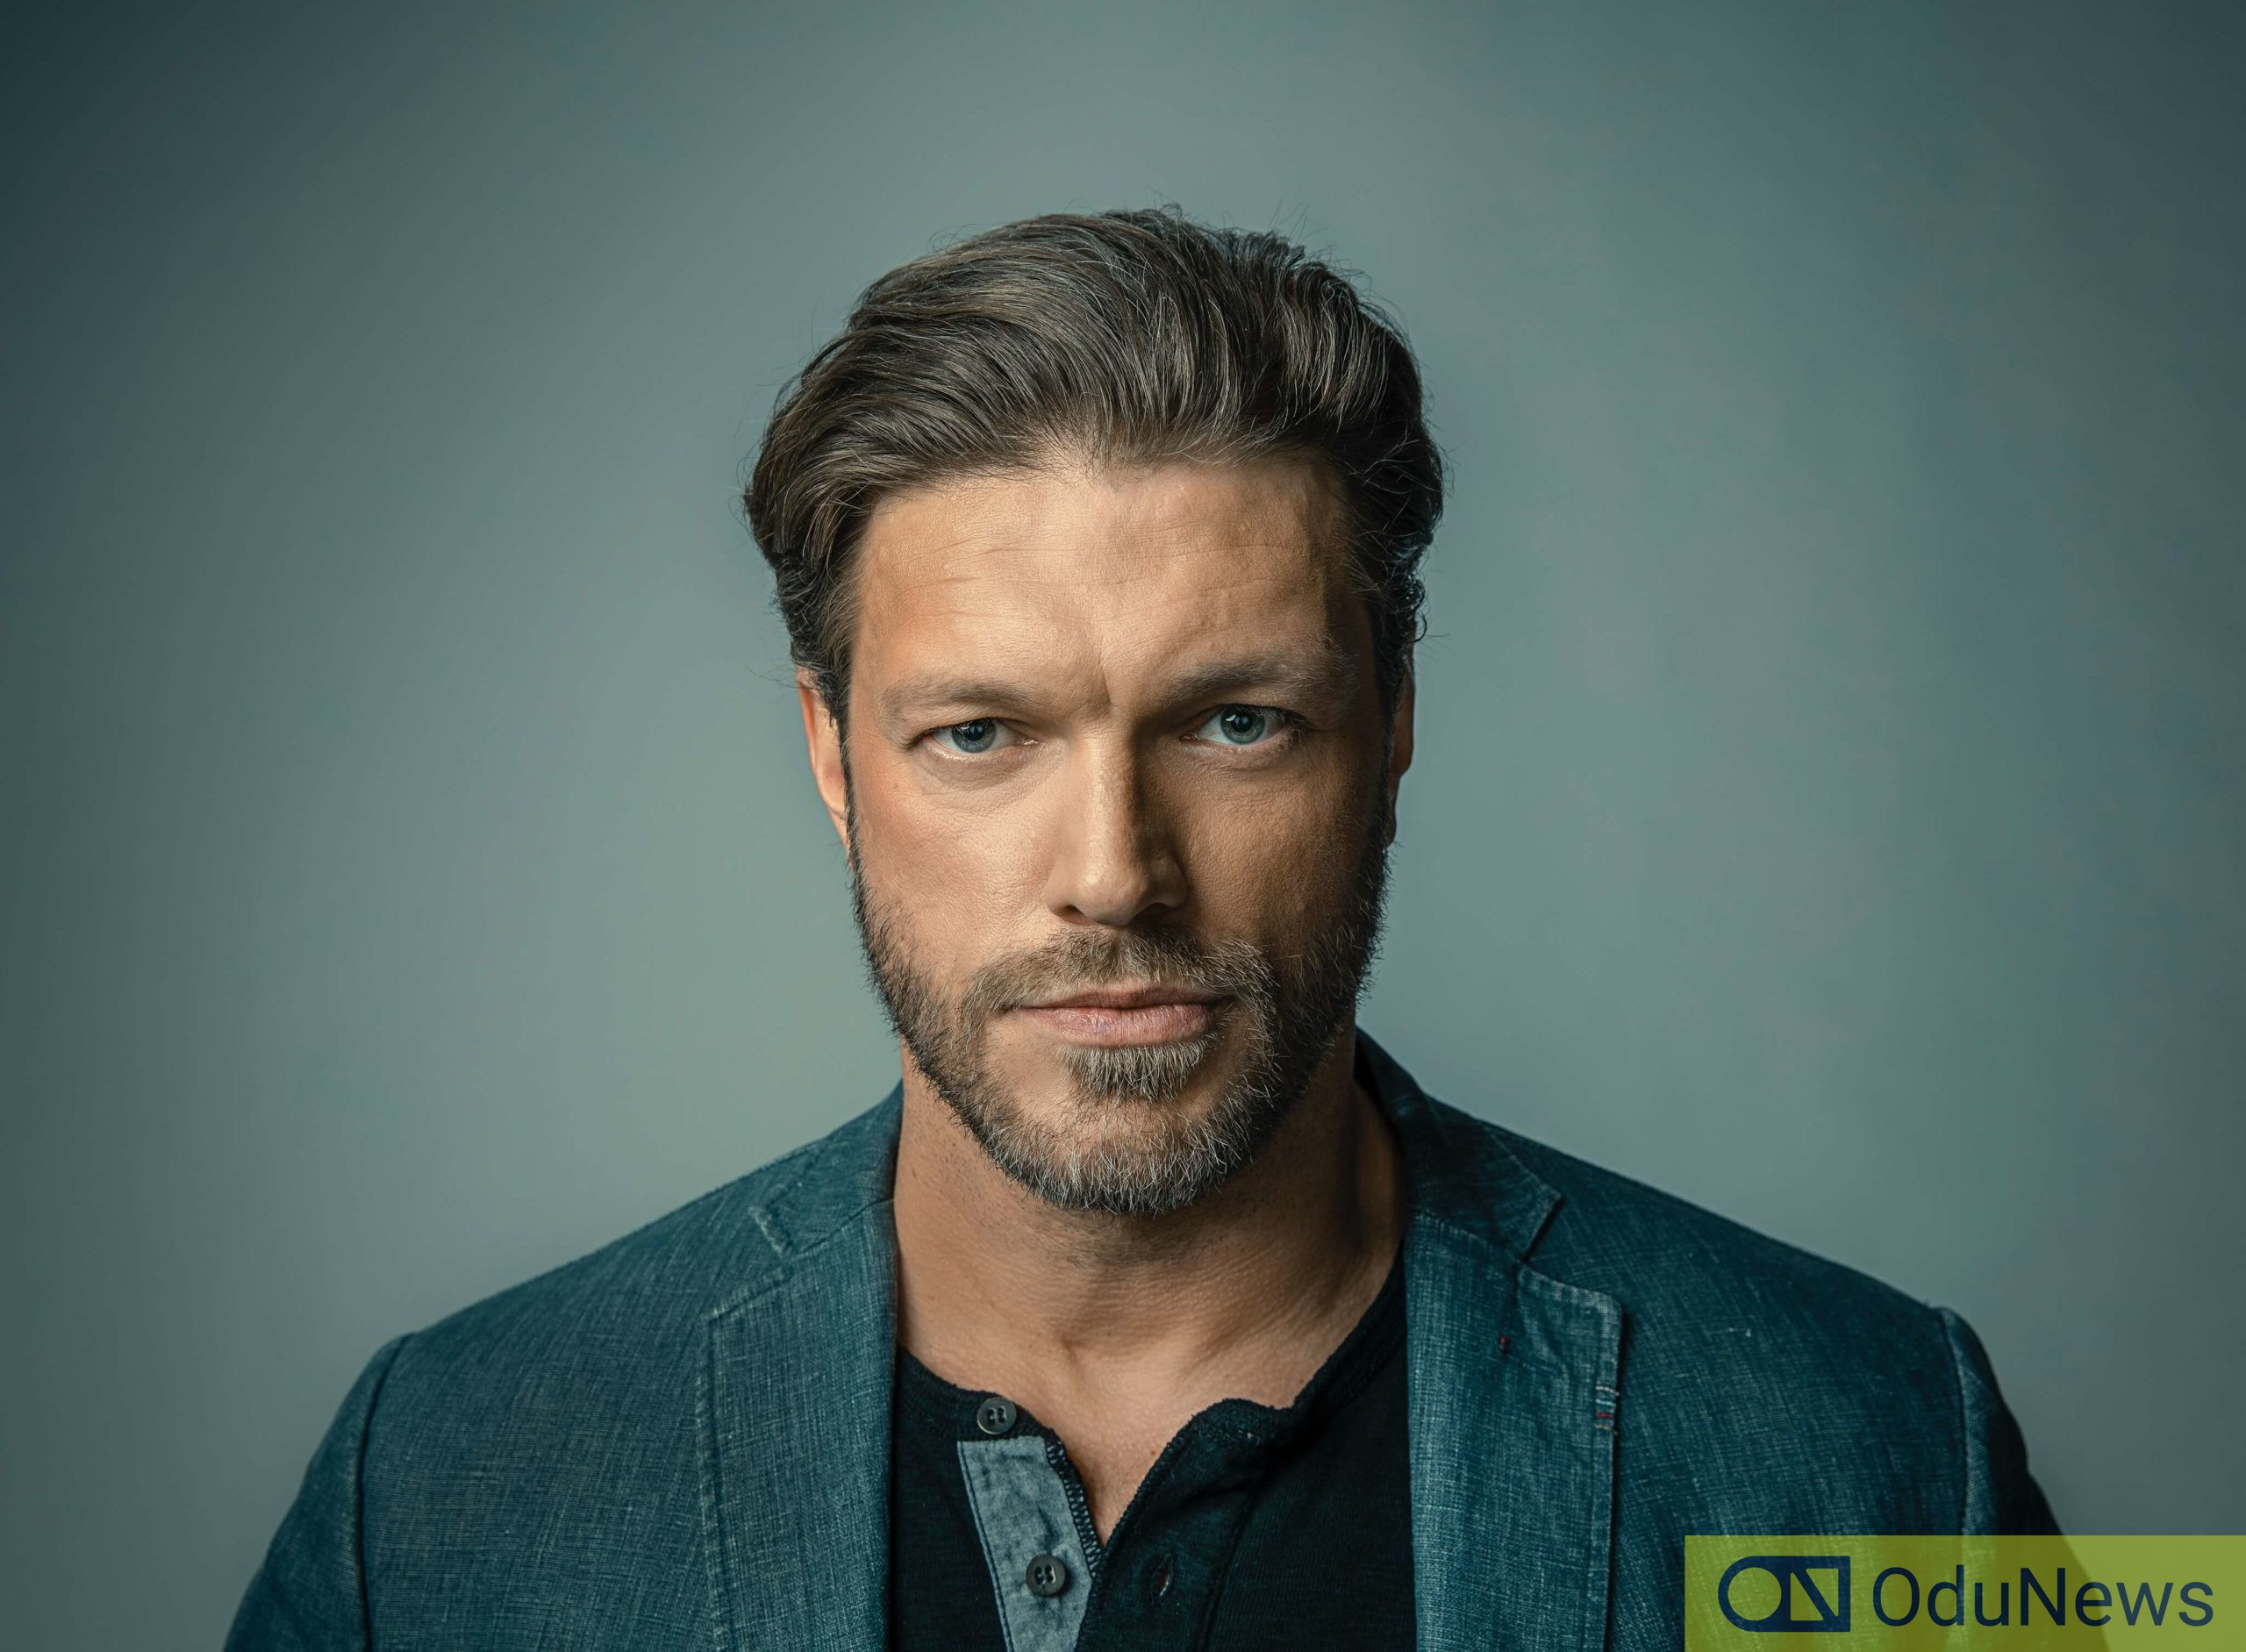 Adam Copeland was known as Edge during his time in the WWE